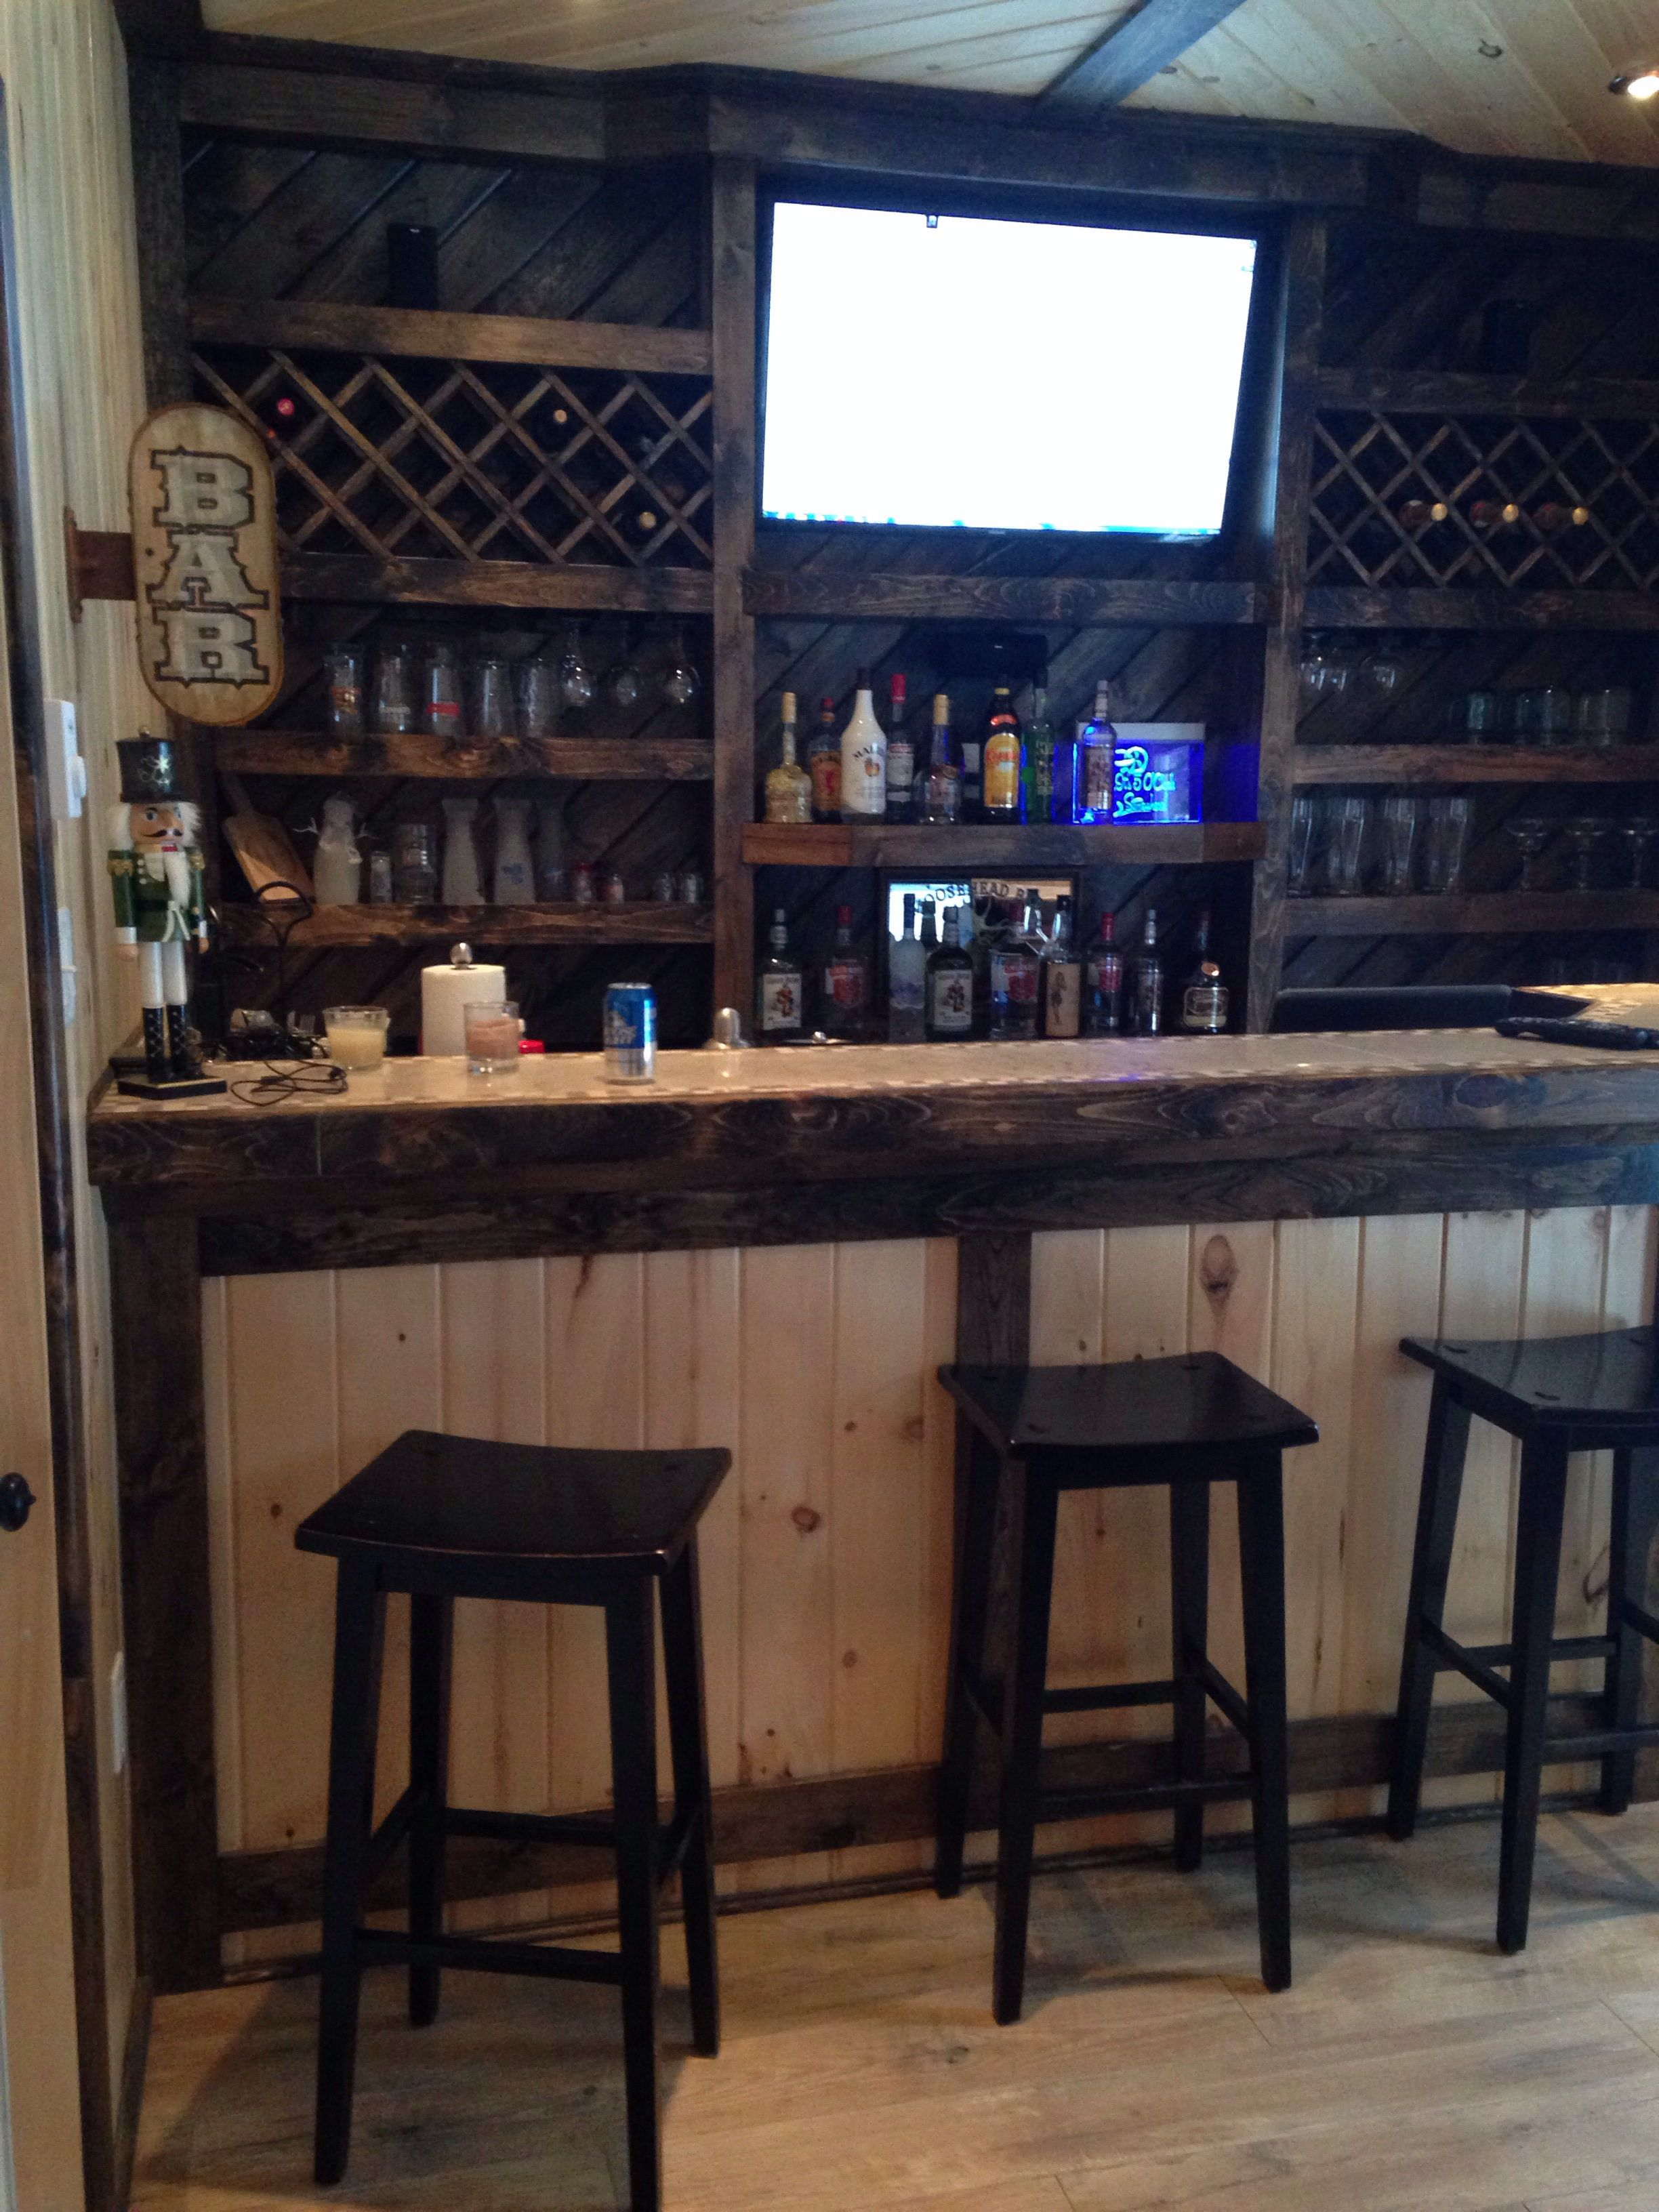 Building A Man Cave Bar : Garage bar idea for the hubby s man cave like this but